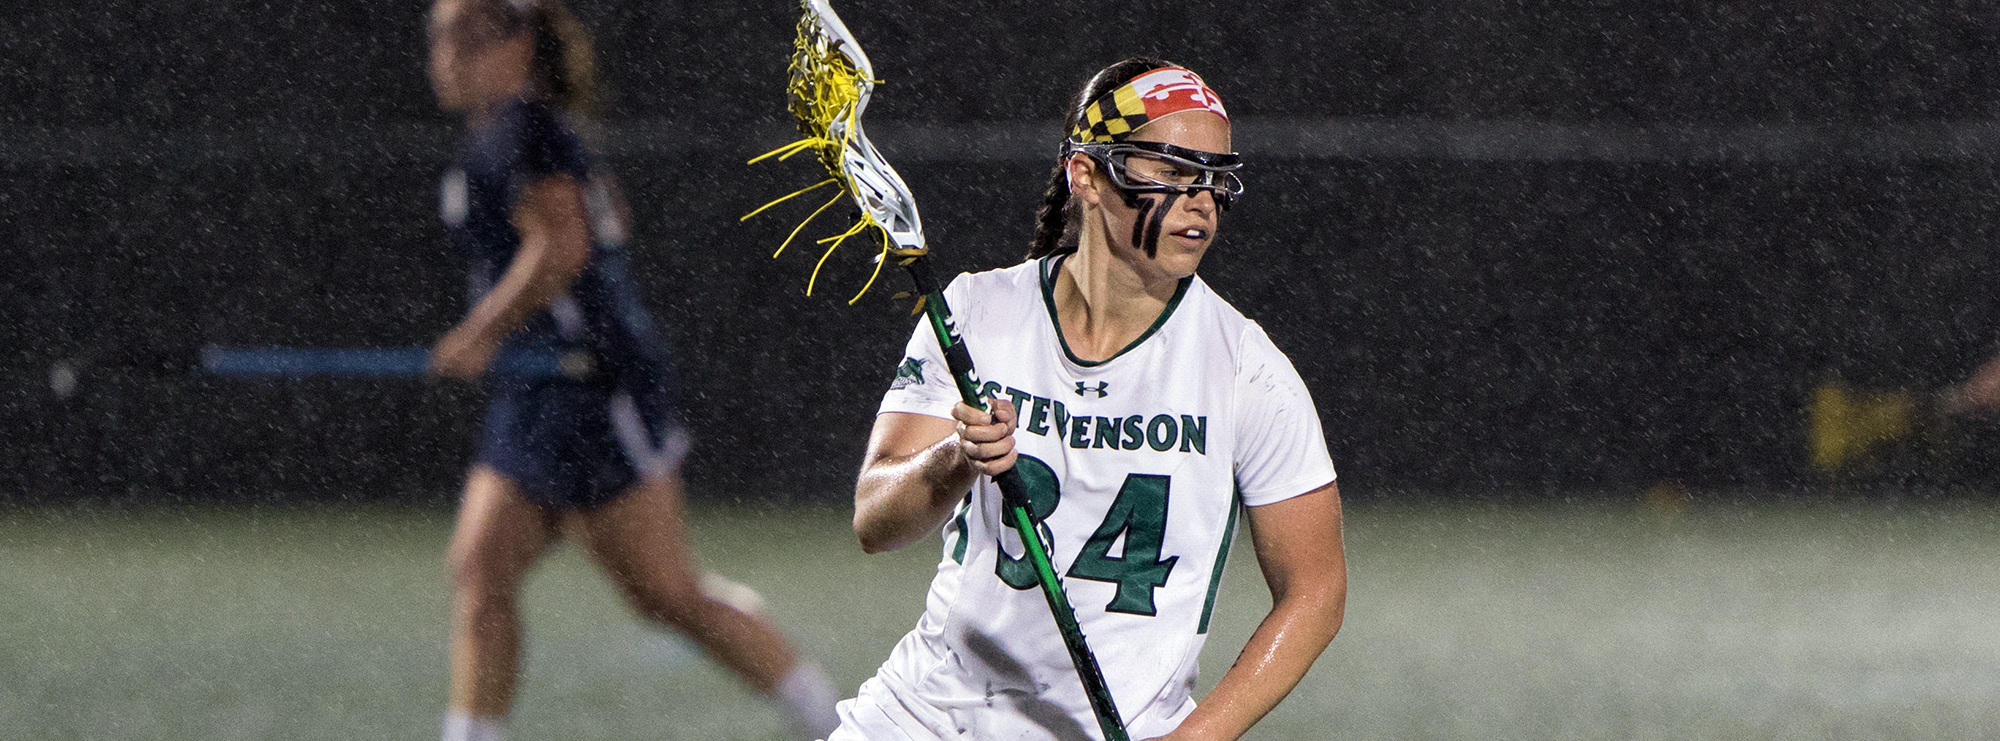 Jamie Bittner Named to IWLCA Senior All-Star Game